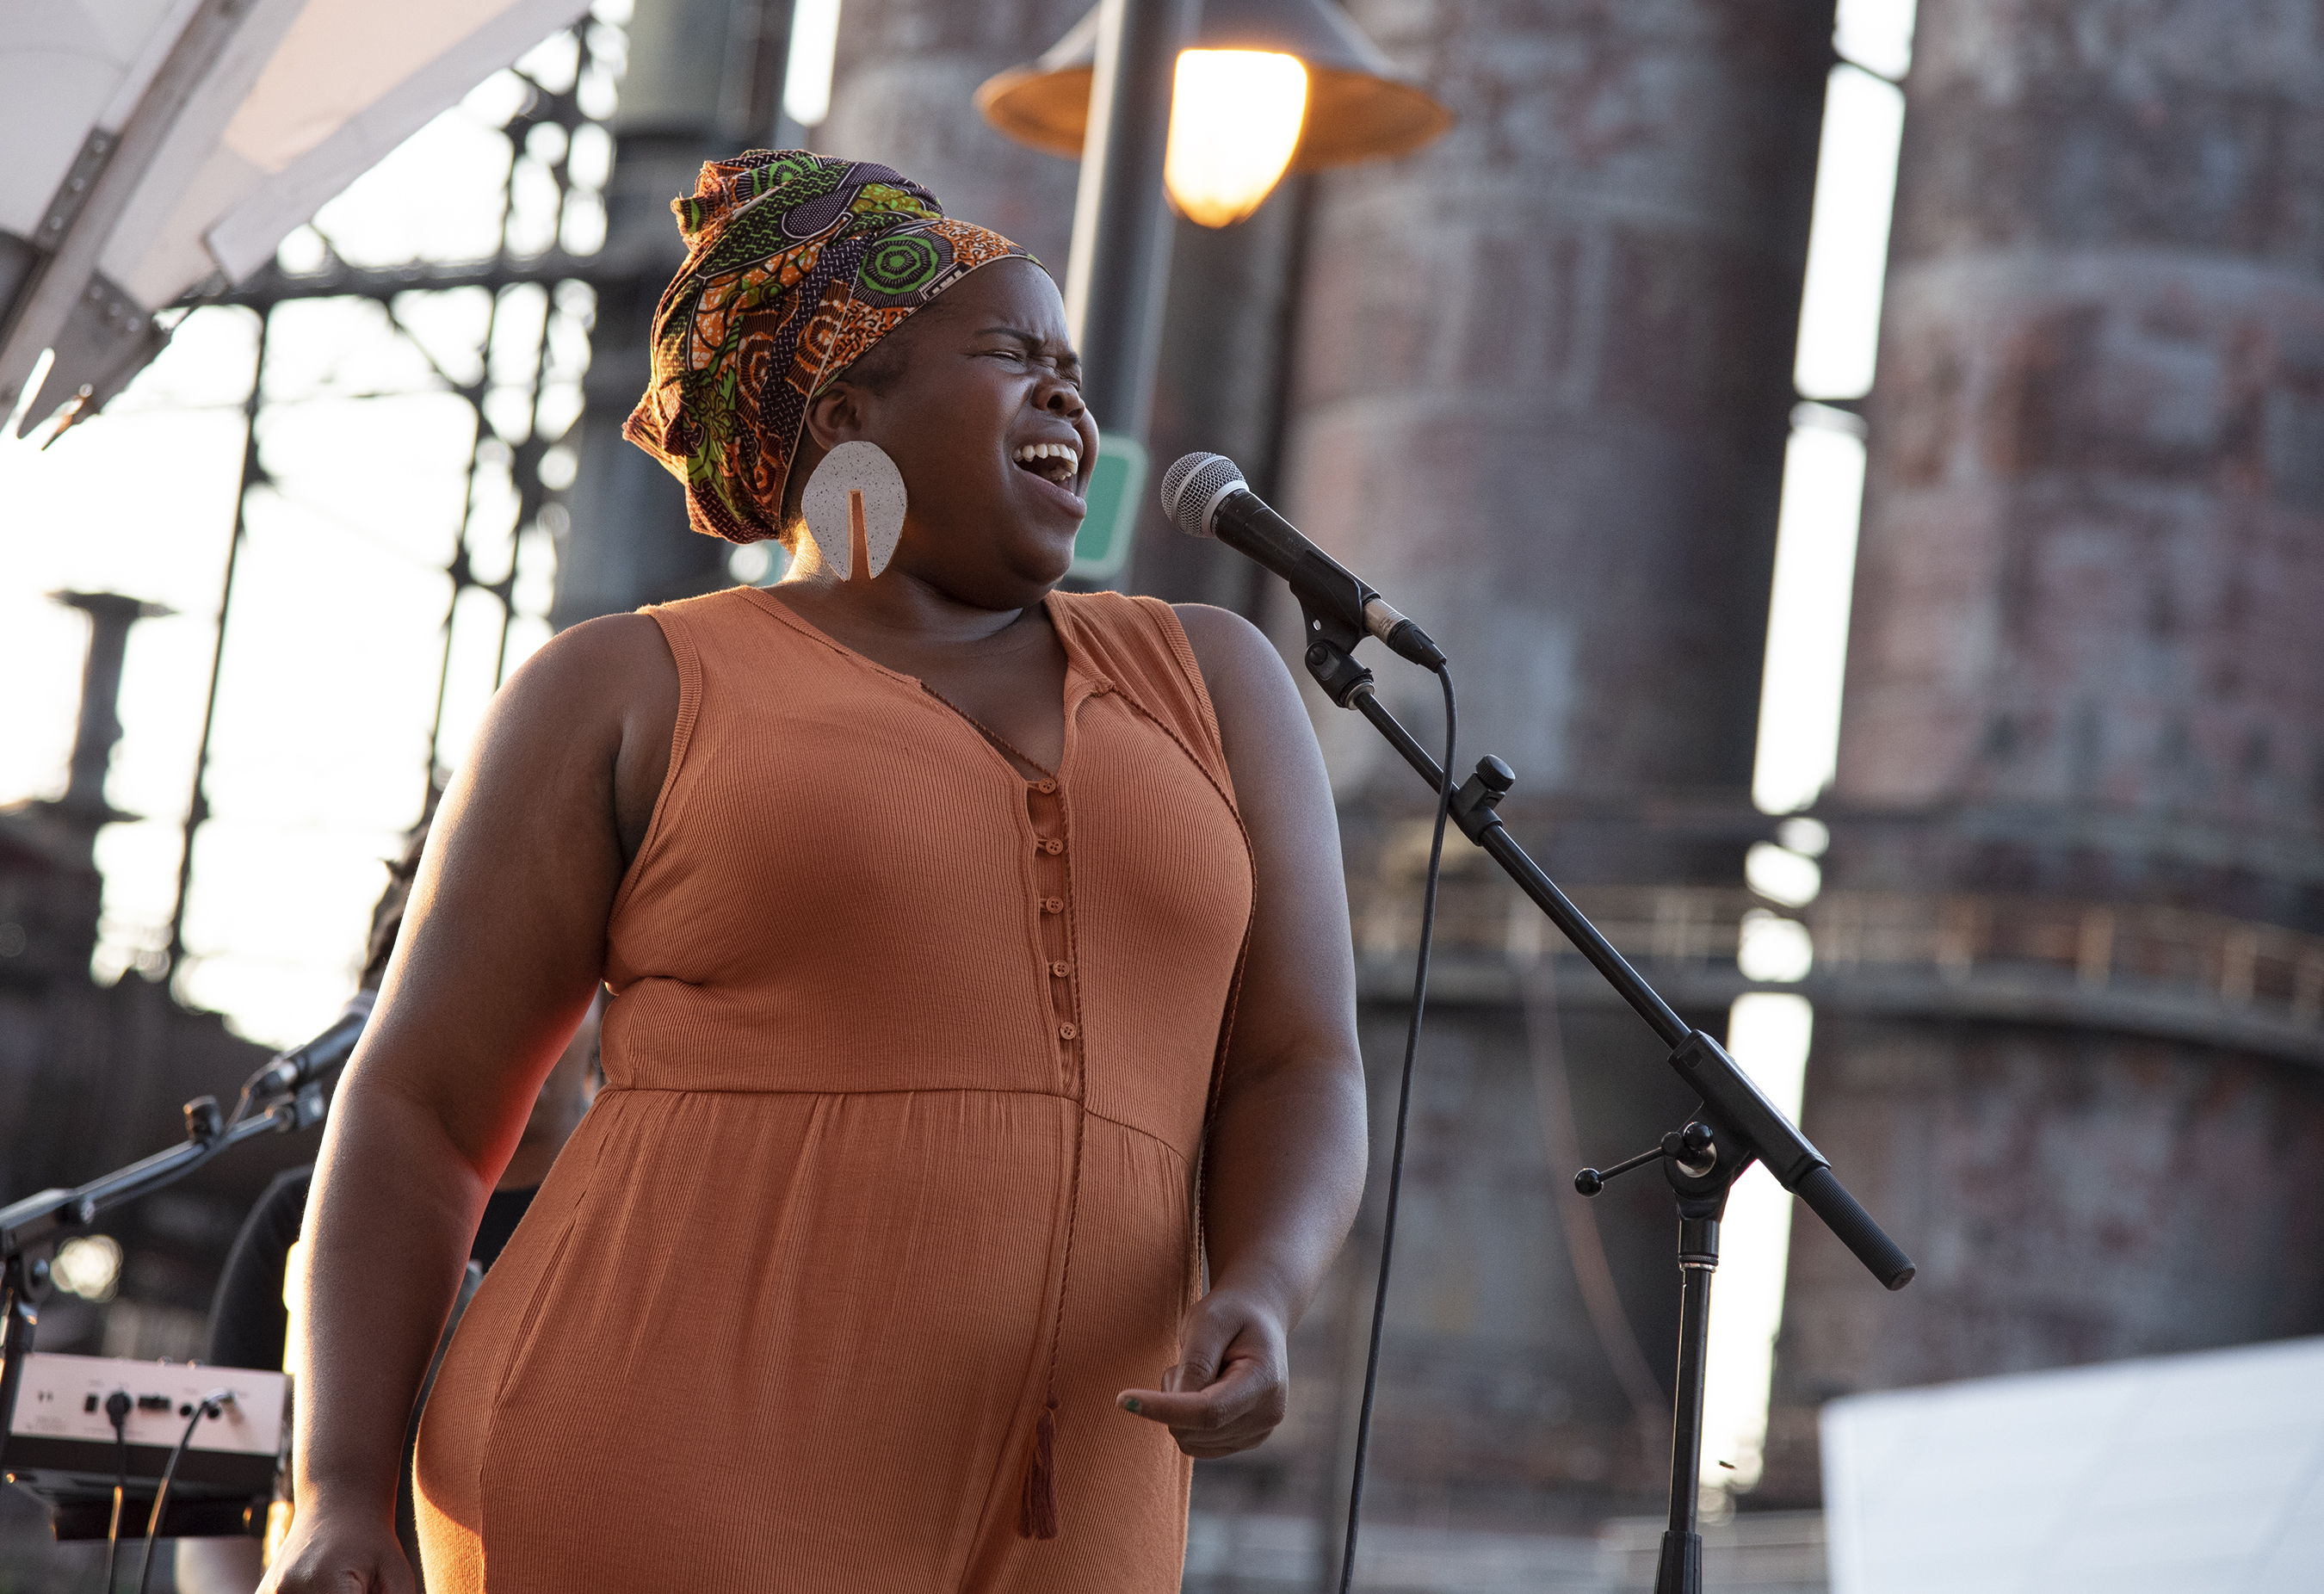 DANIELLE PONDER AT STEELSTACKS